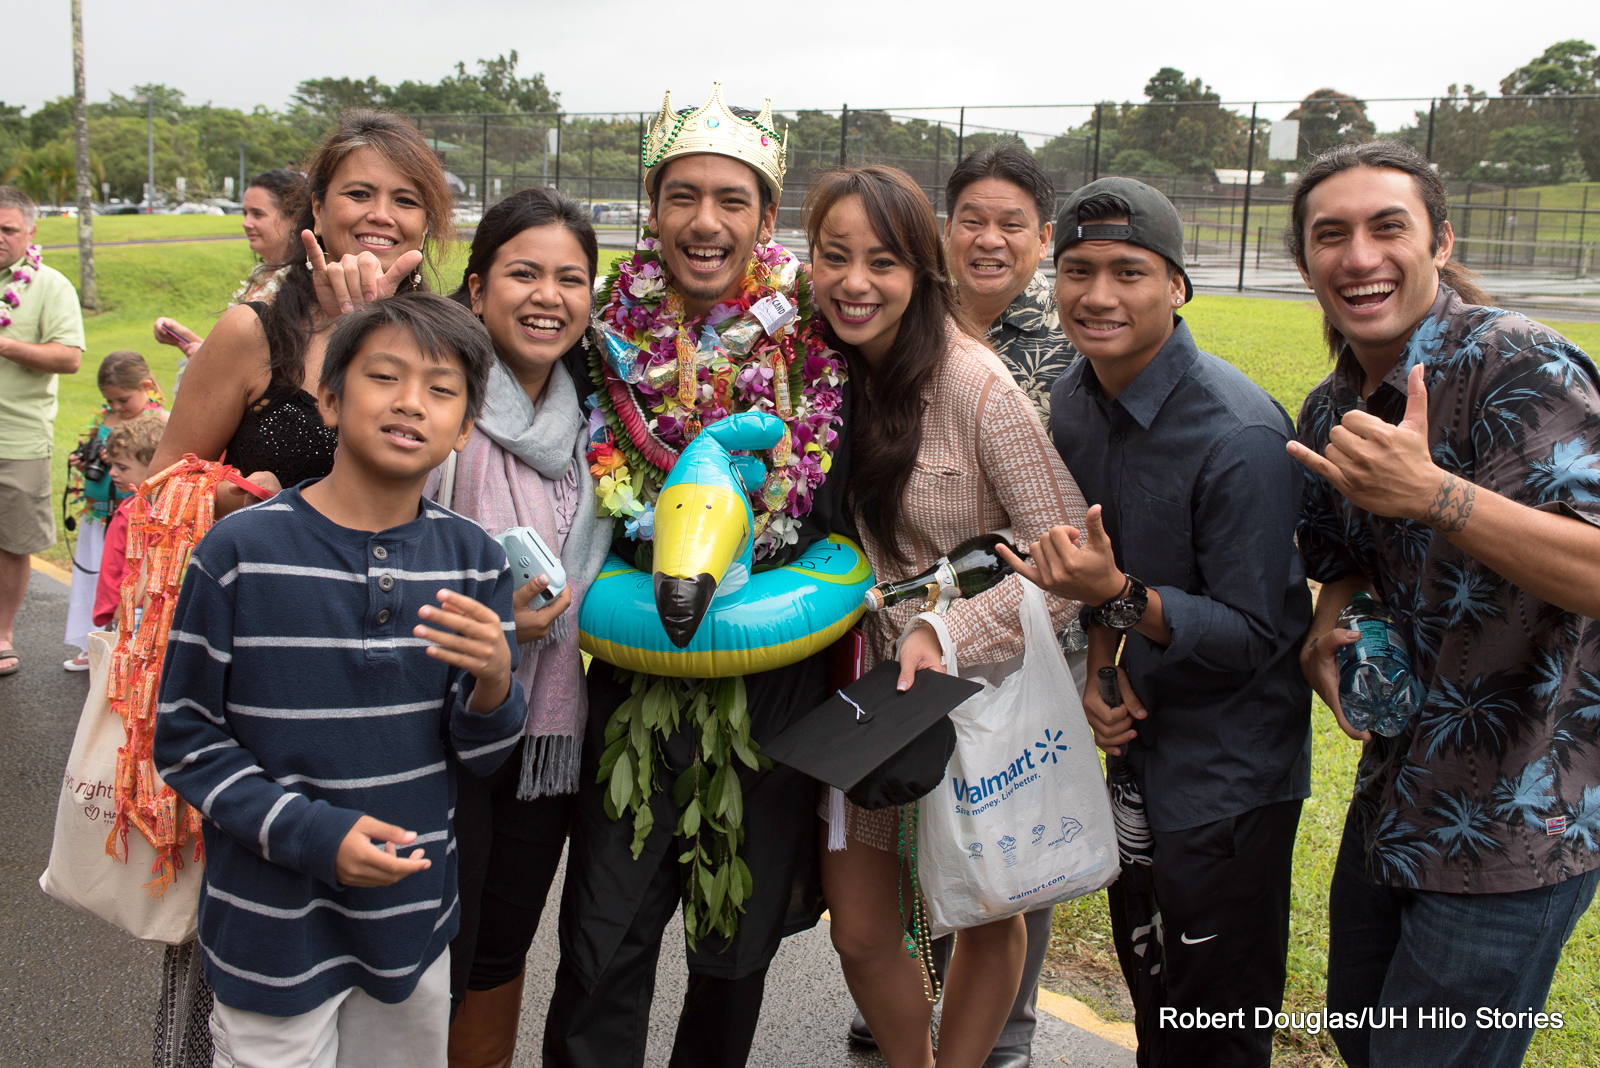 A graduate celebrates after Commencement with family and friends.